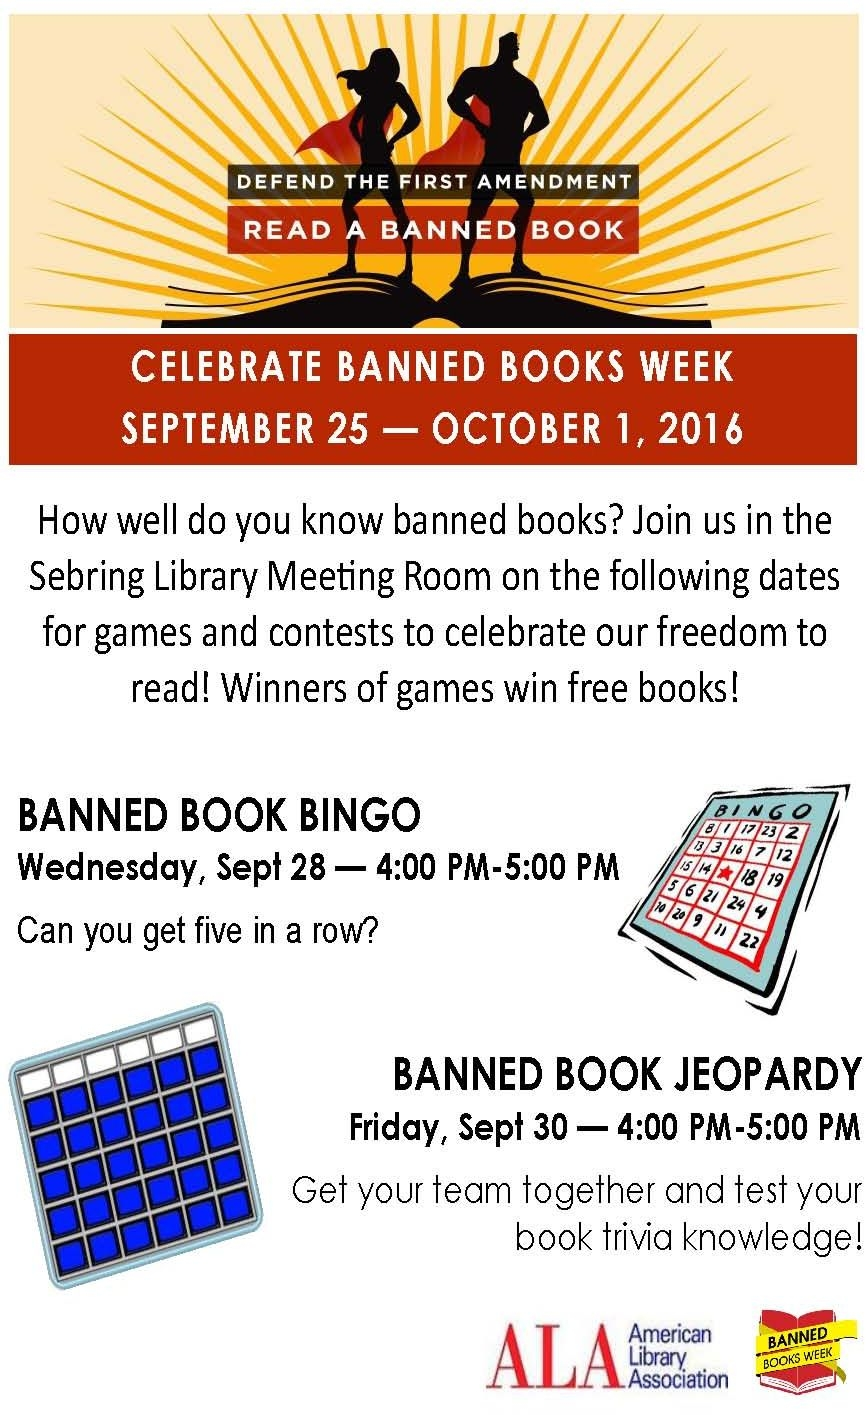 Banned & Challenged Books